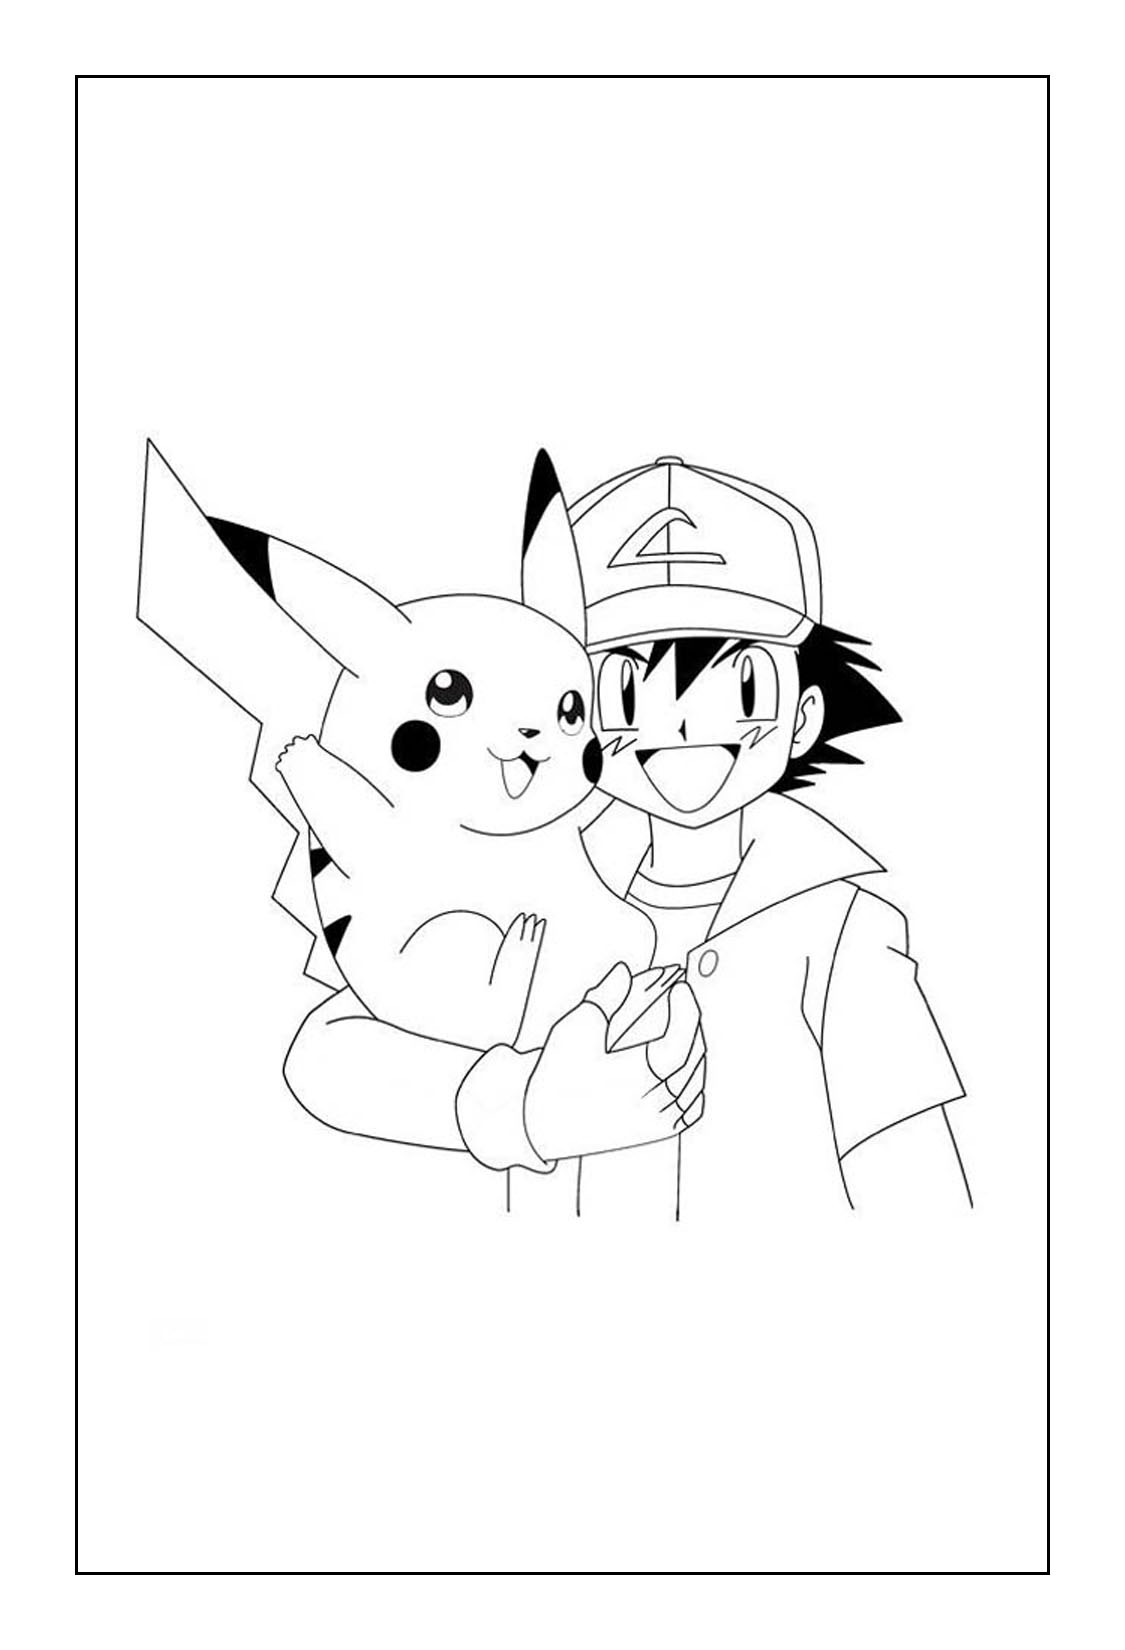 Pikachu Coloring Pages - Pikachu and Ash